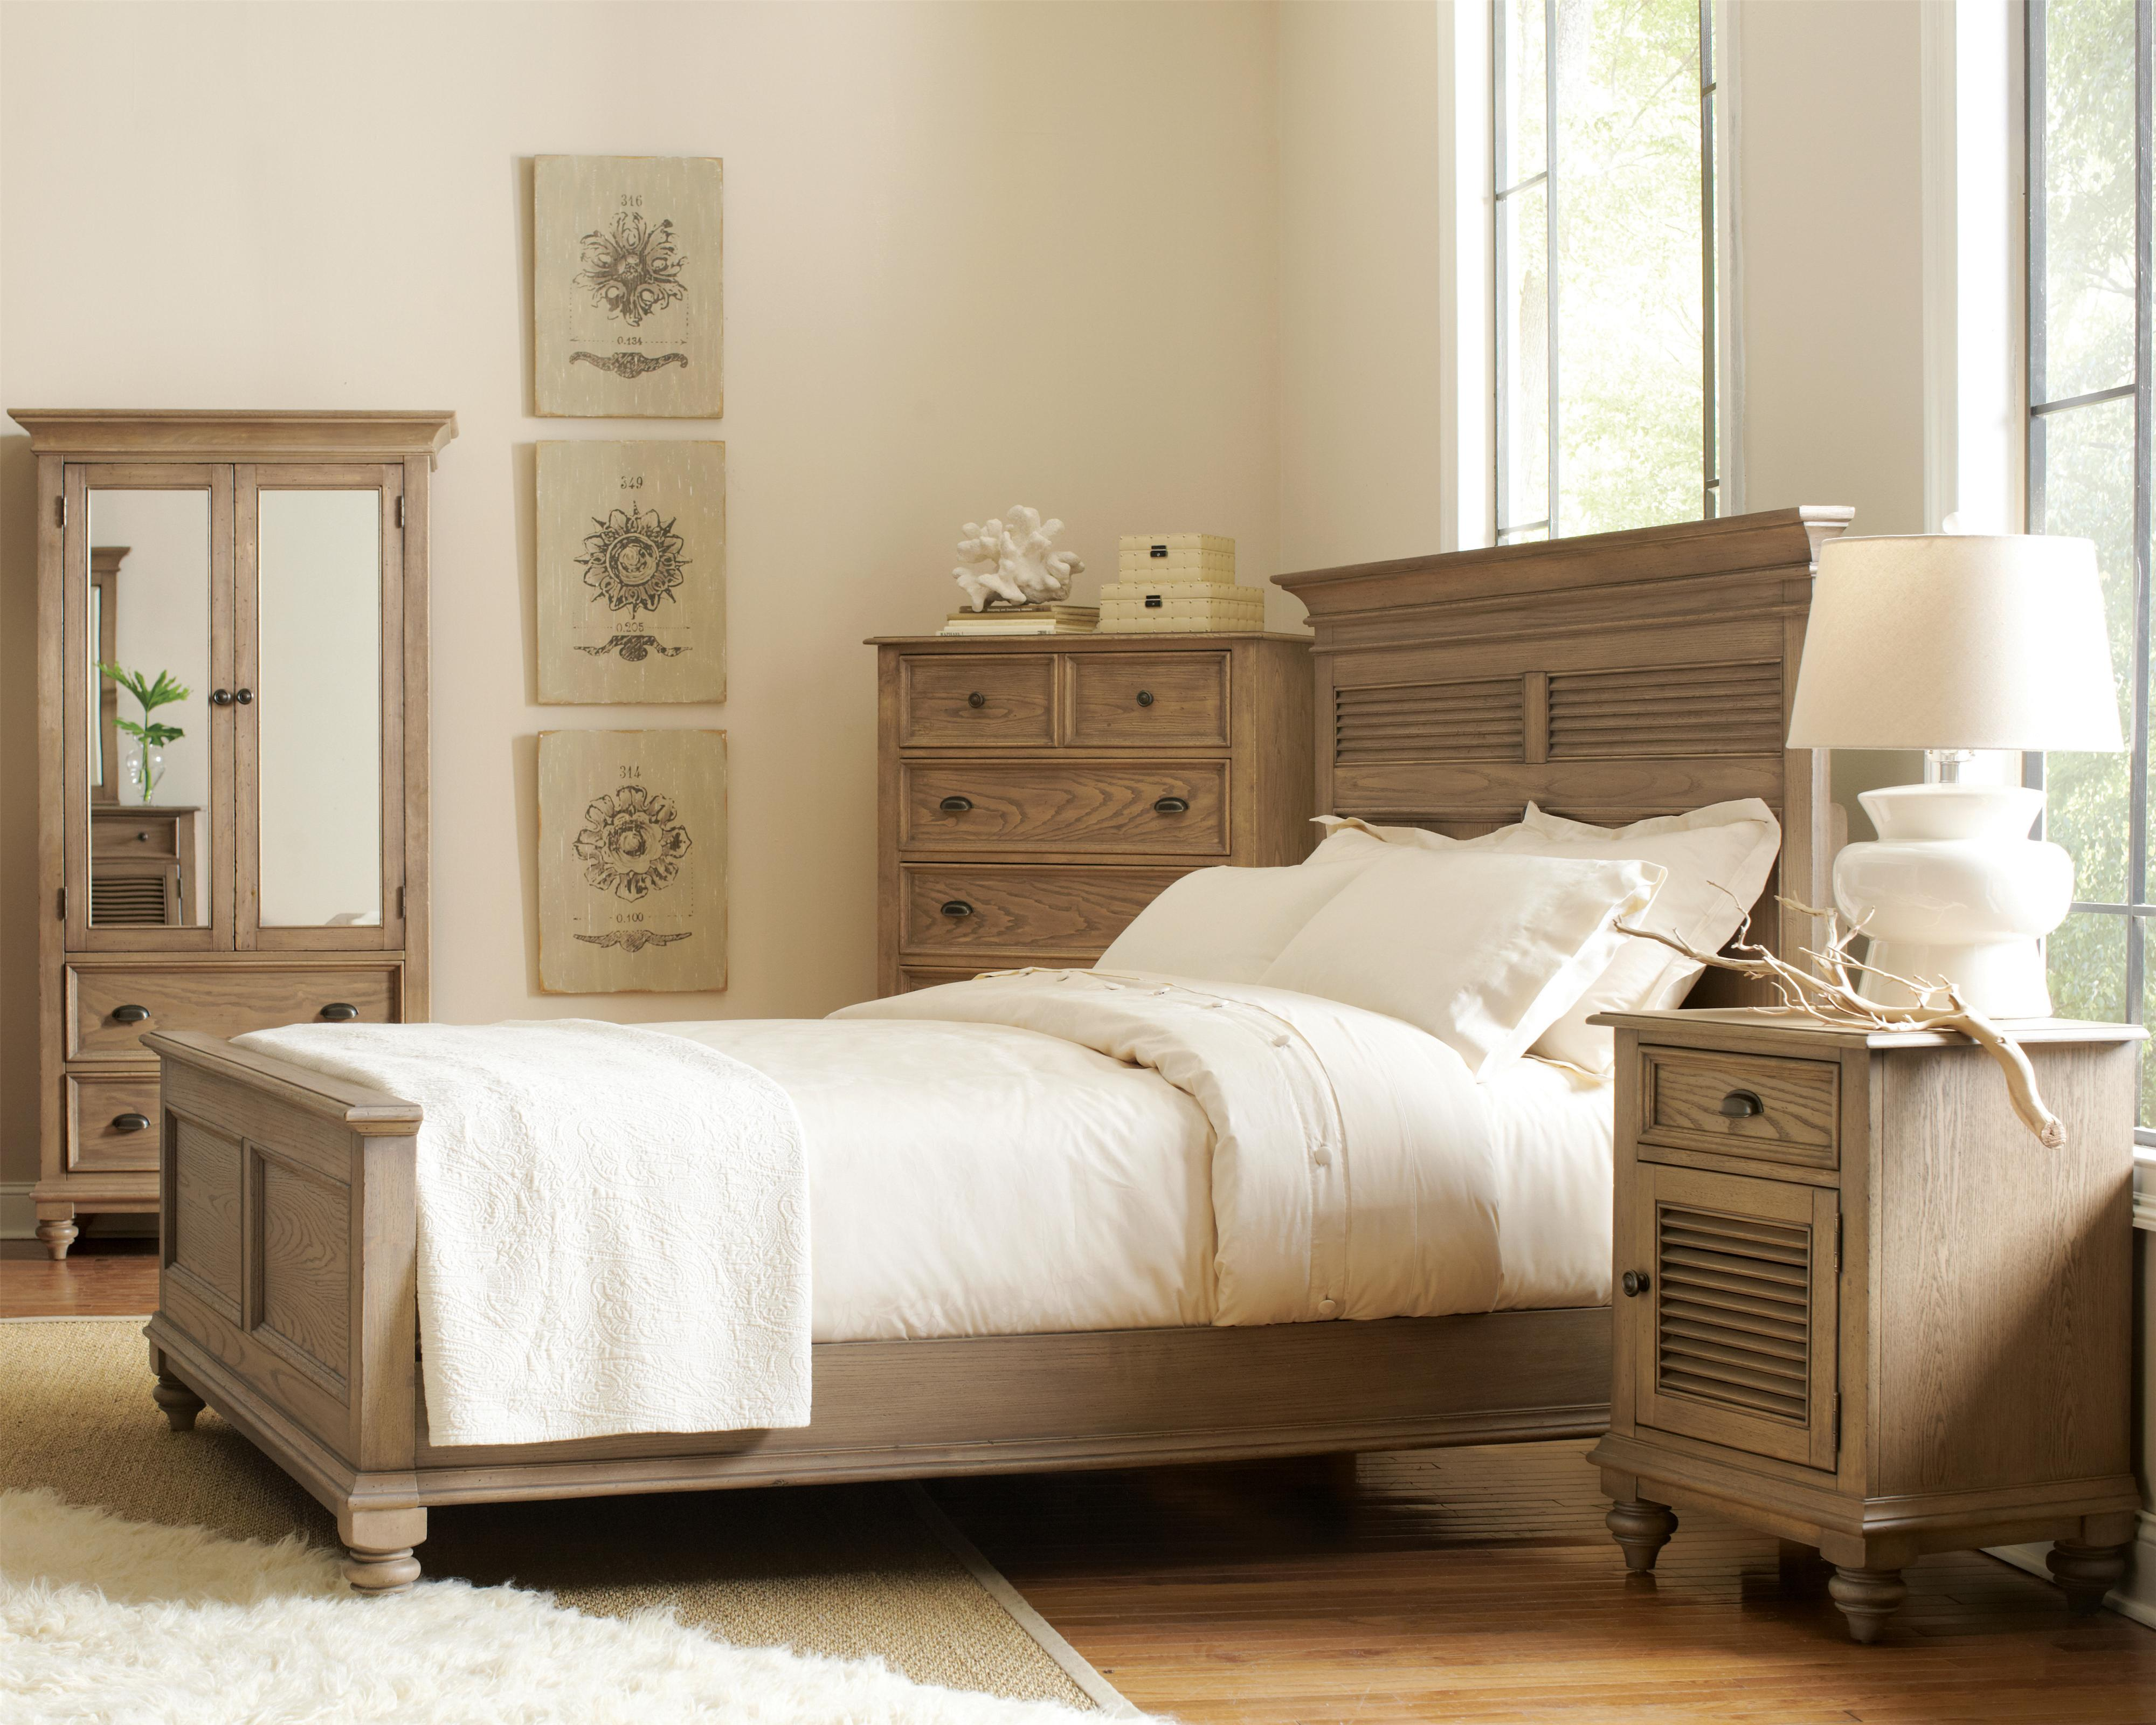 Riverside Furniture Coventry Full/Queen Bedroom Group - Item Number: 32400 F Q Bedroom Group 7